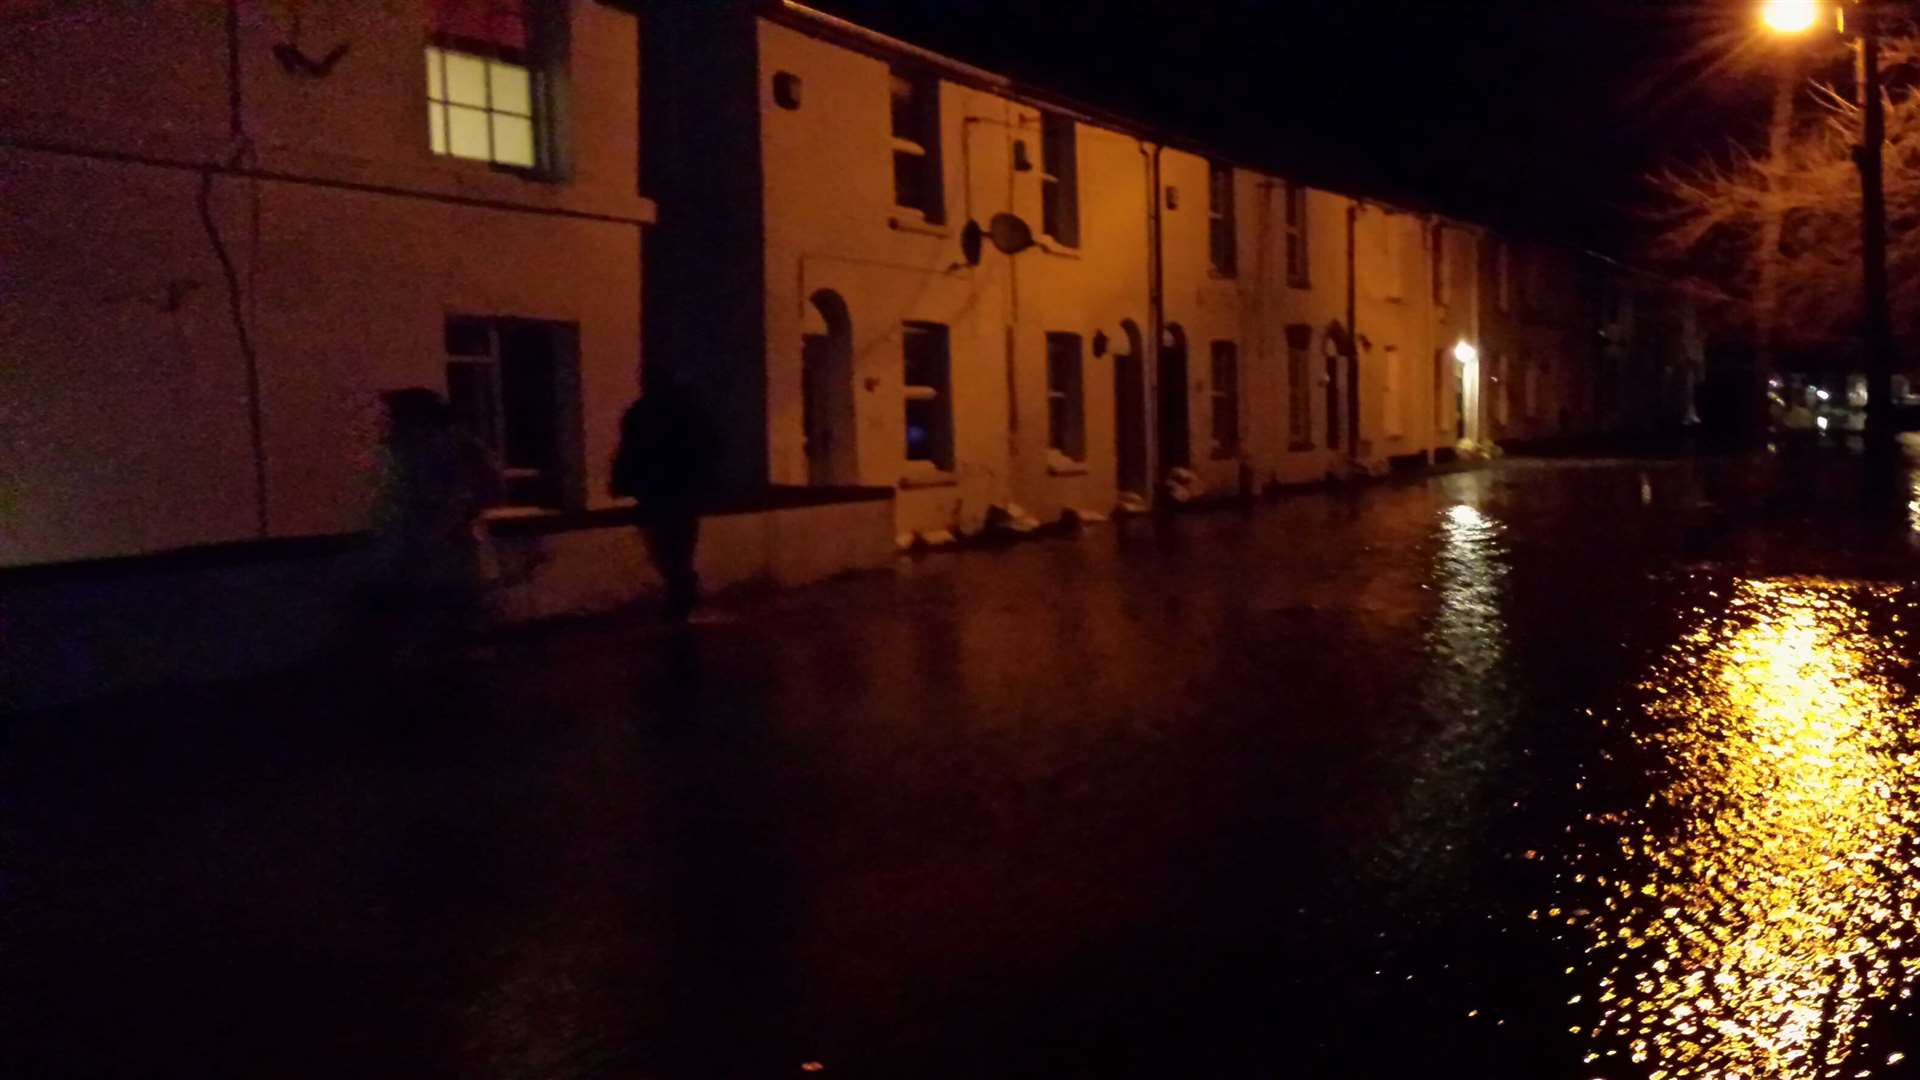 Homes In Whitstable And Faversham Evacuated After Tidal